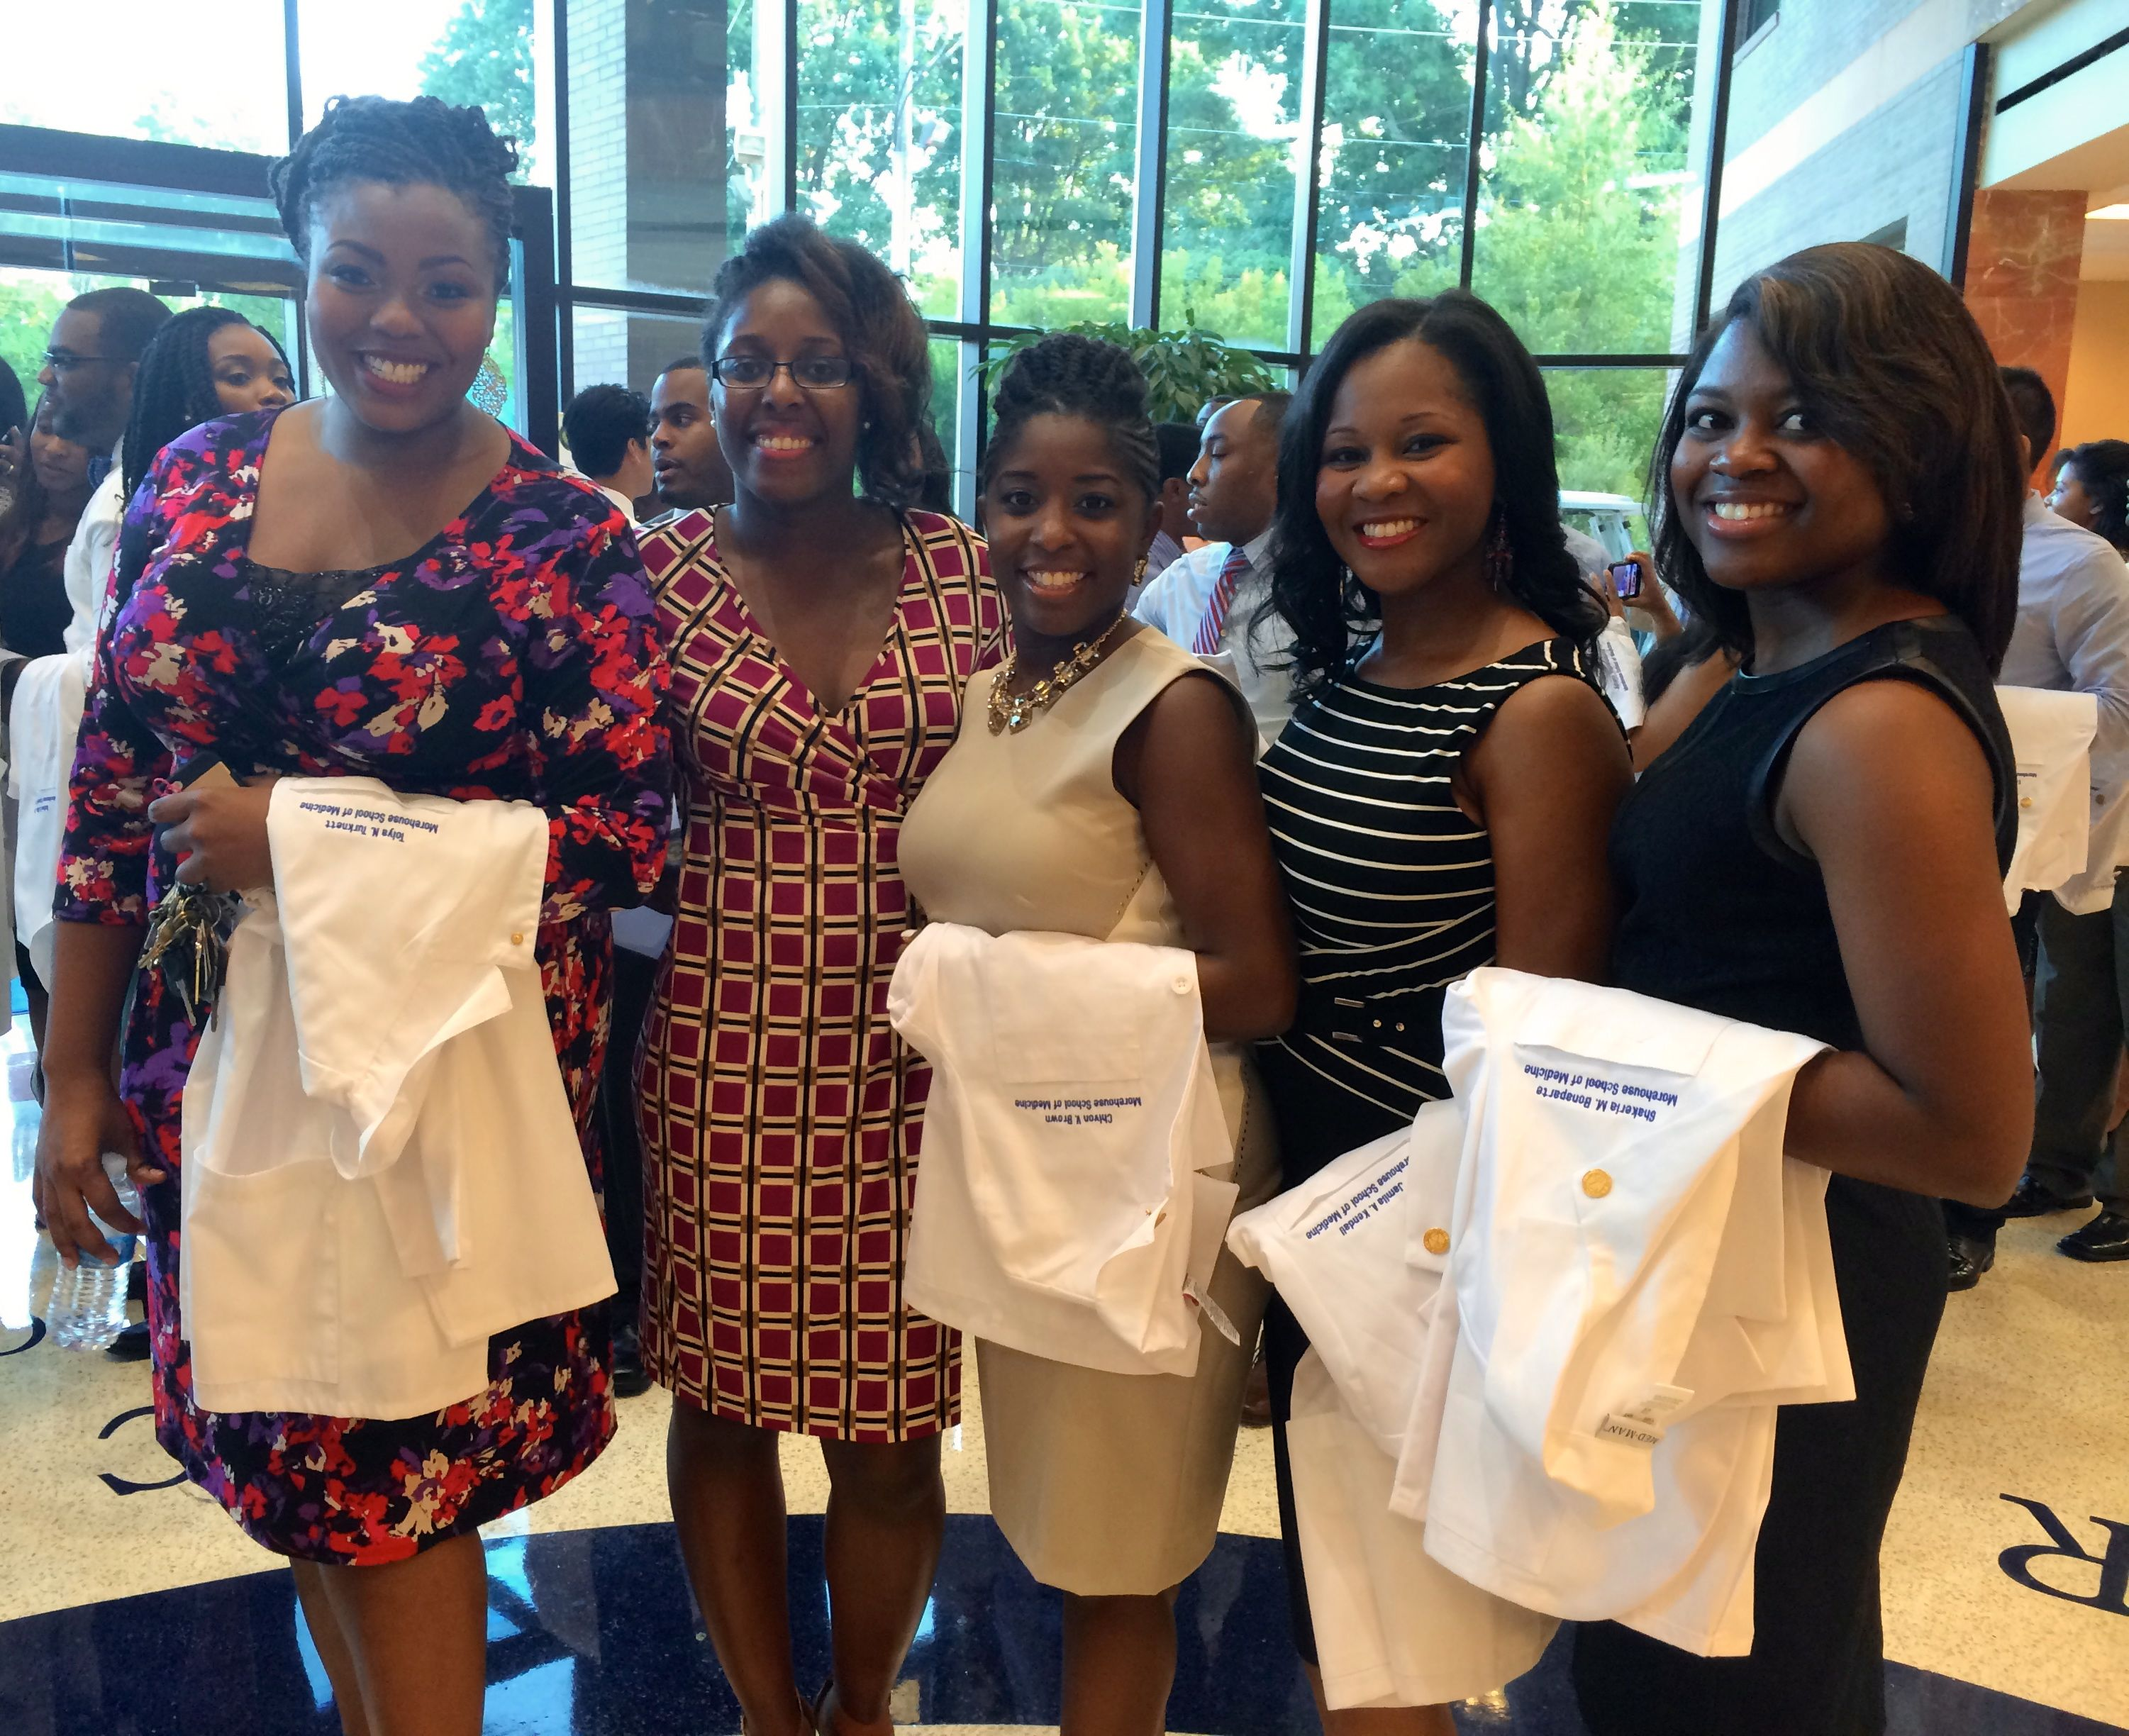 a group of APEX members holding their whitecoats